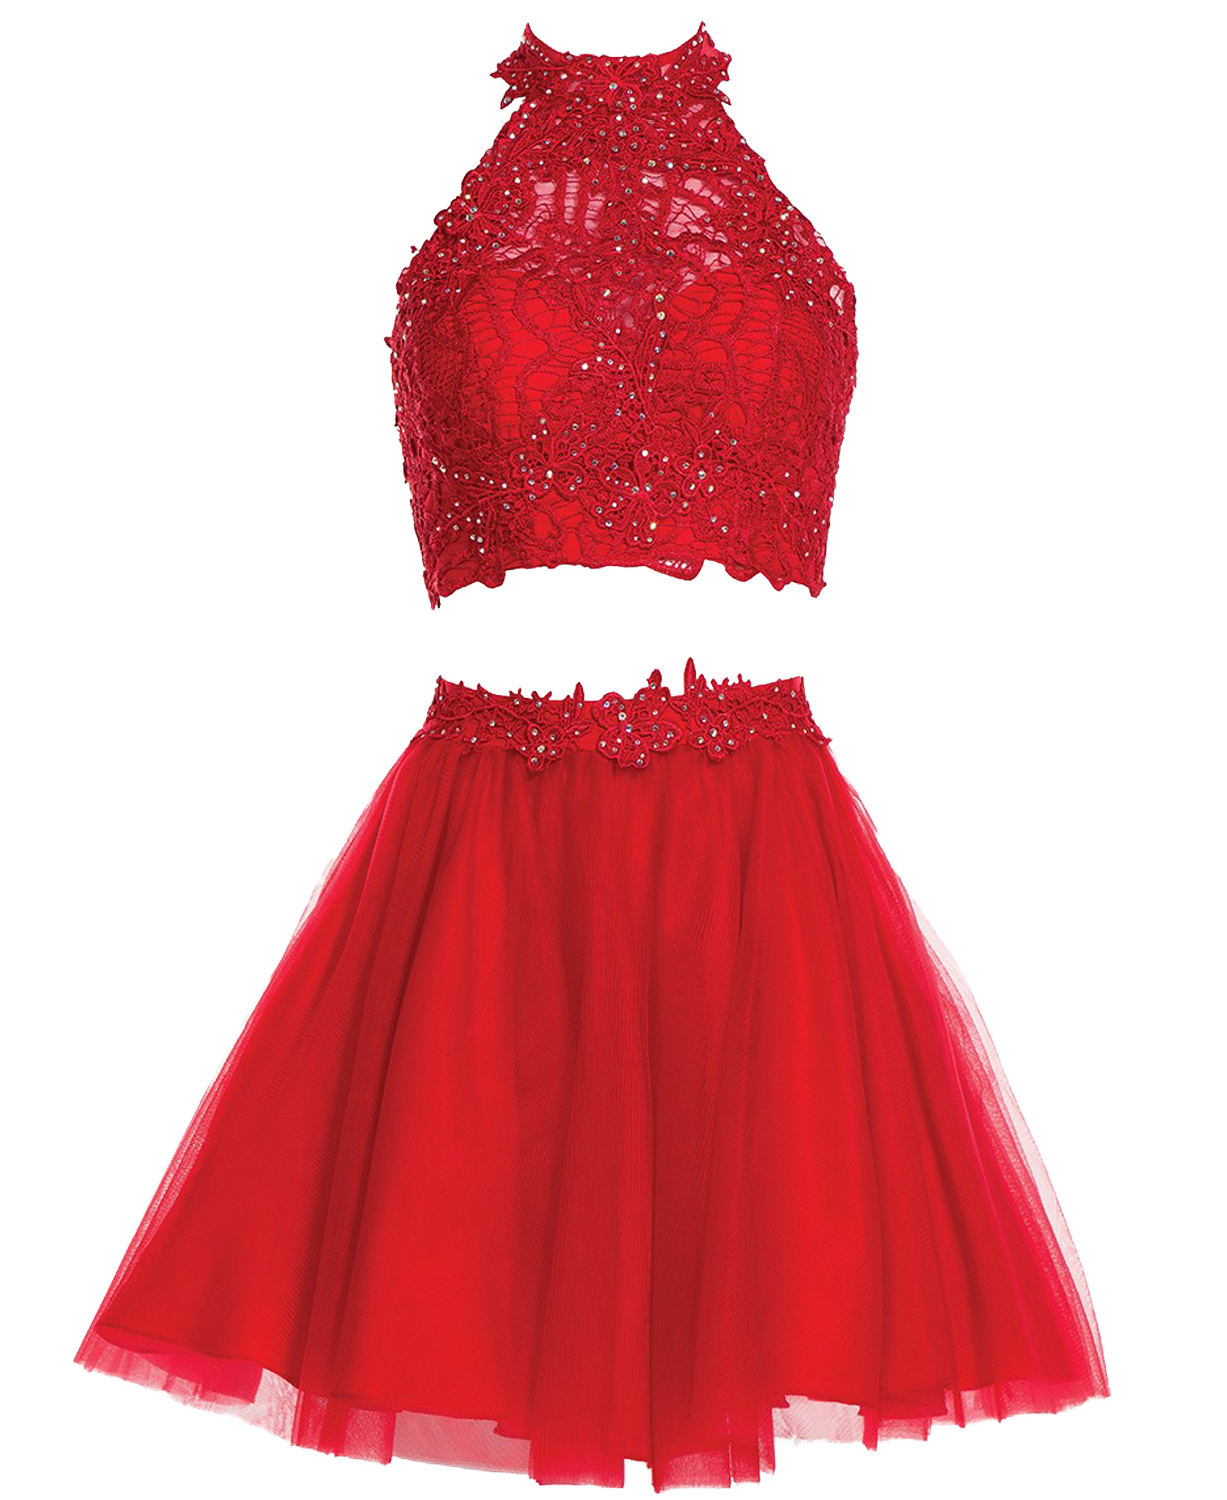 b50f3c4008dd Two Piece Red Halter Neck A Line Tulle Lace Short Homecoming Dress,Navy  Blue Lace